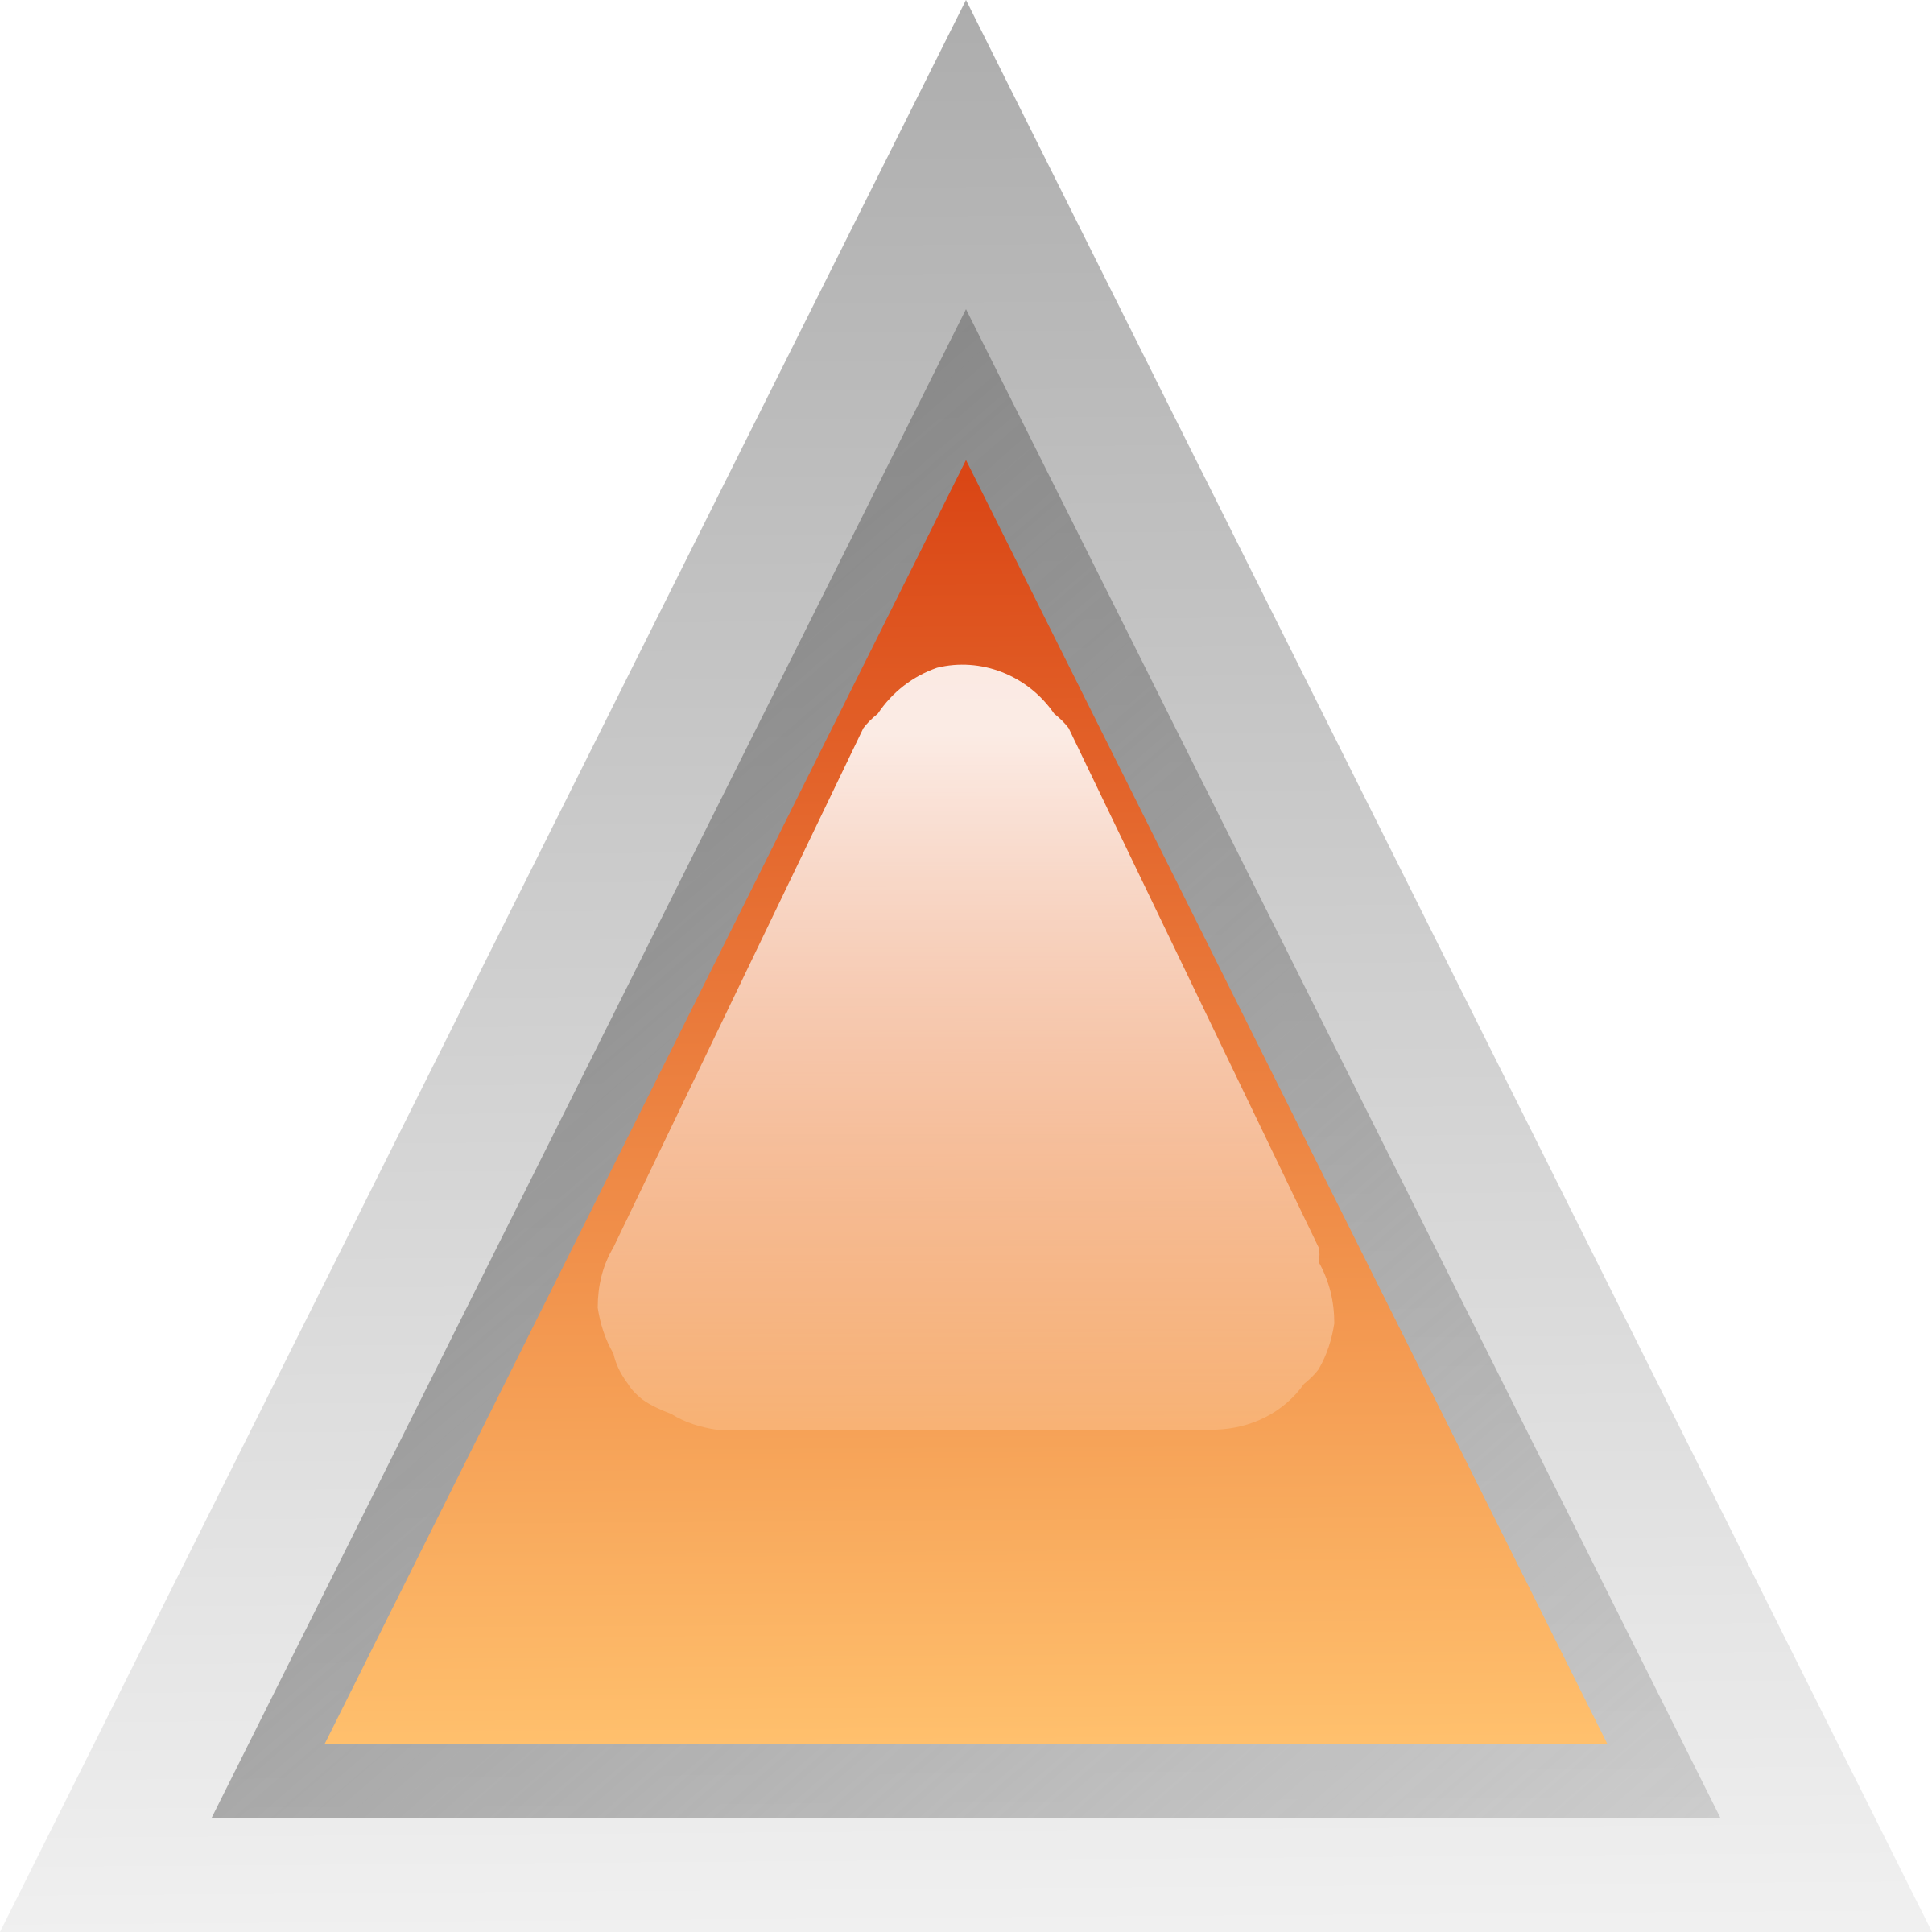 led triangular orange by Anonymous